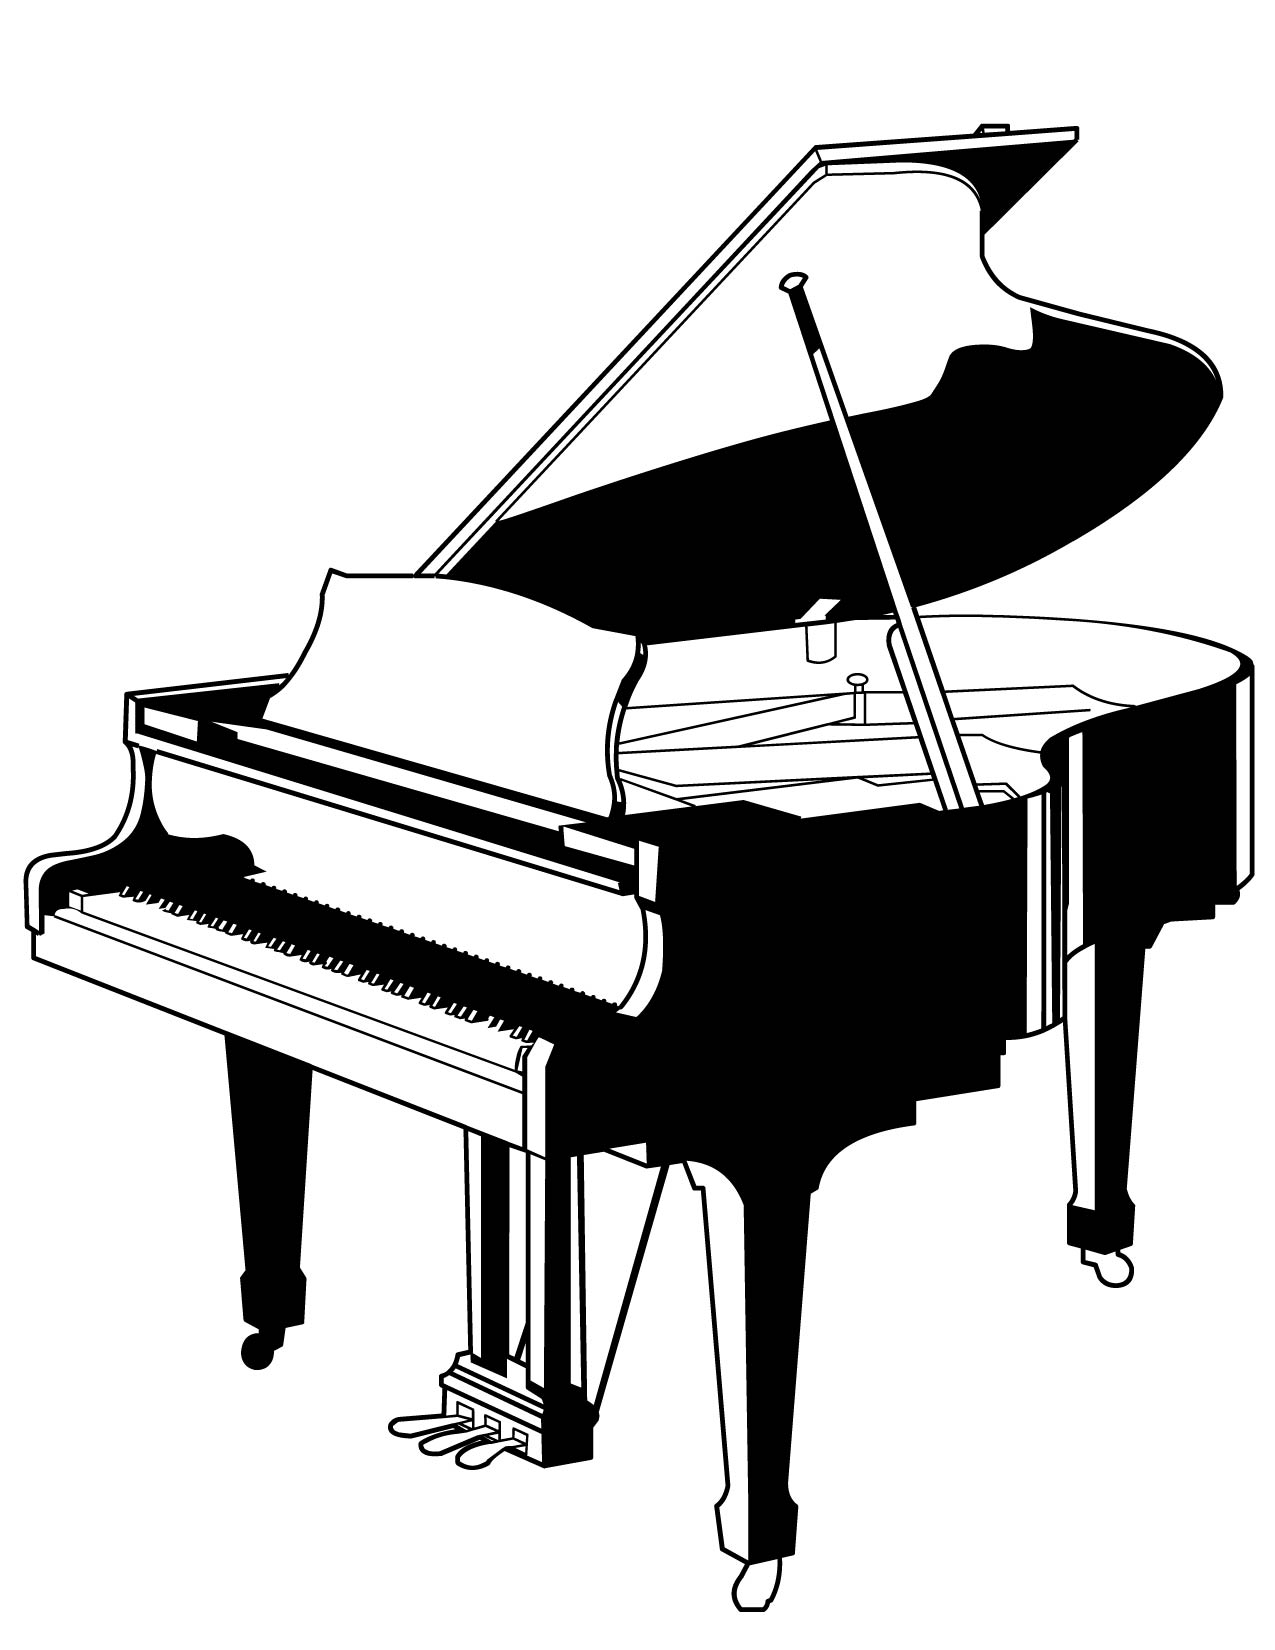 drawings of pianos electric back of piano clipart 20 free cliparts download of pianos drawings